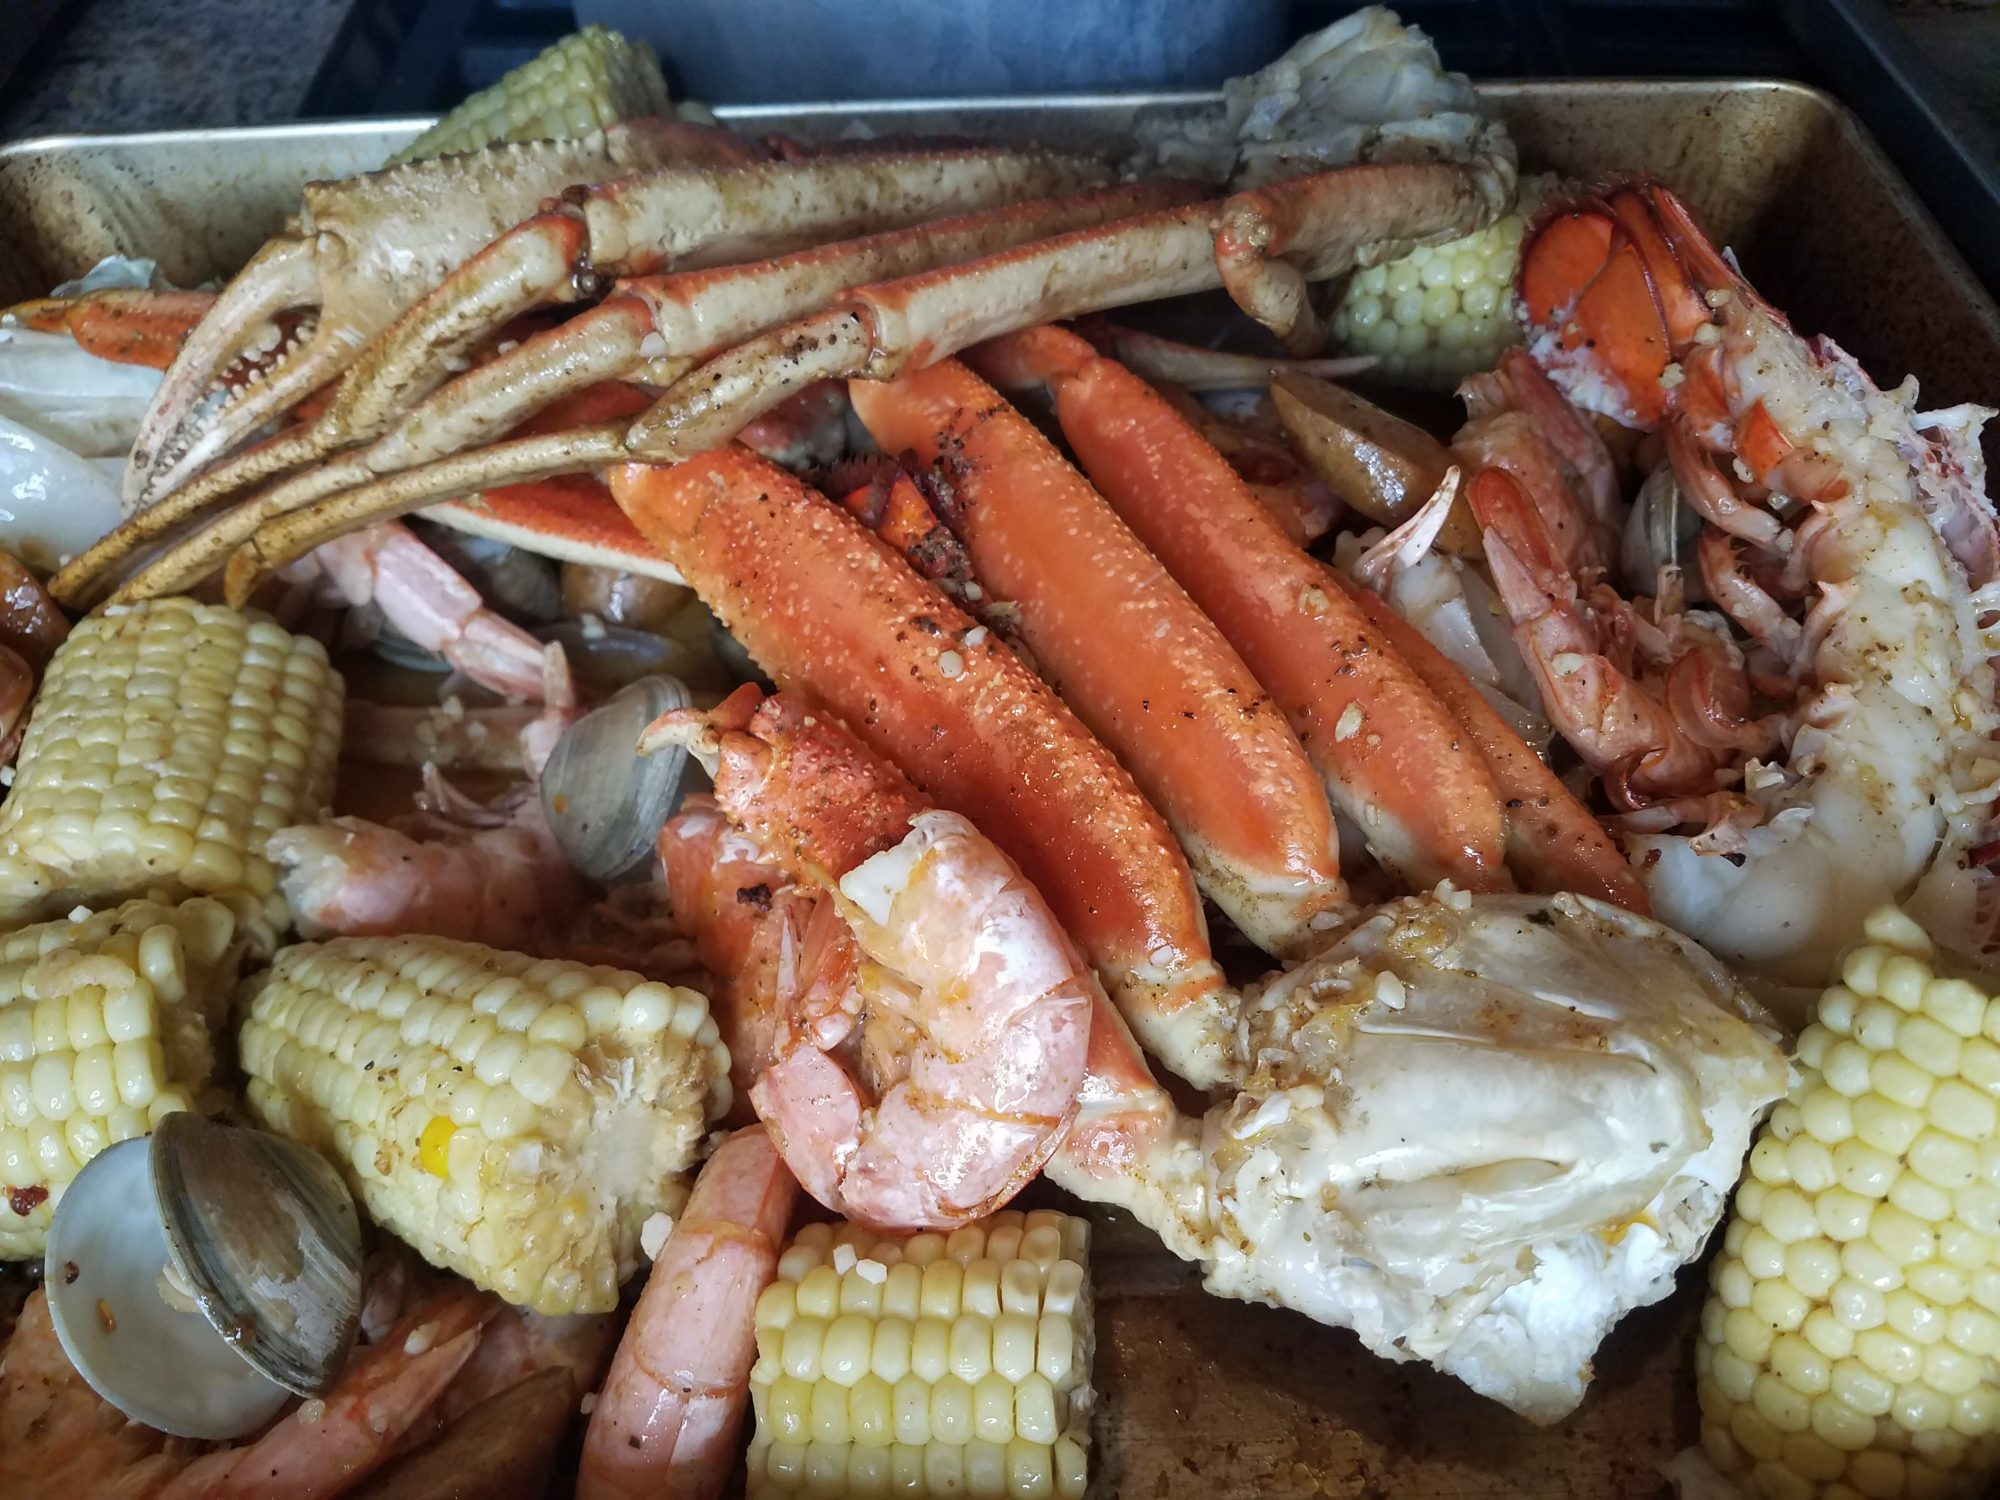 If you are looking for a fun project to impress your family or friends, try your hand at this seafood boil. Clams, shrimp, crab, and lobster mingle on the sheet pan with sausage and corn, covered in a delicious garlic butter sauce with a kick.